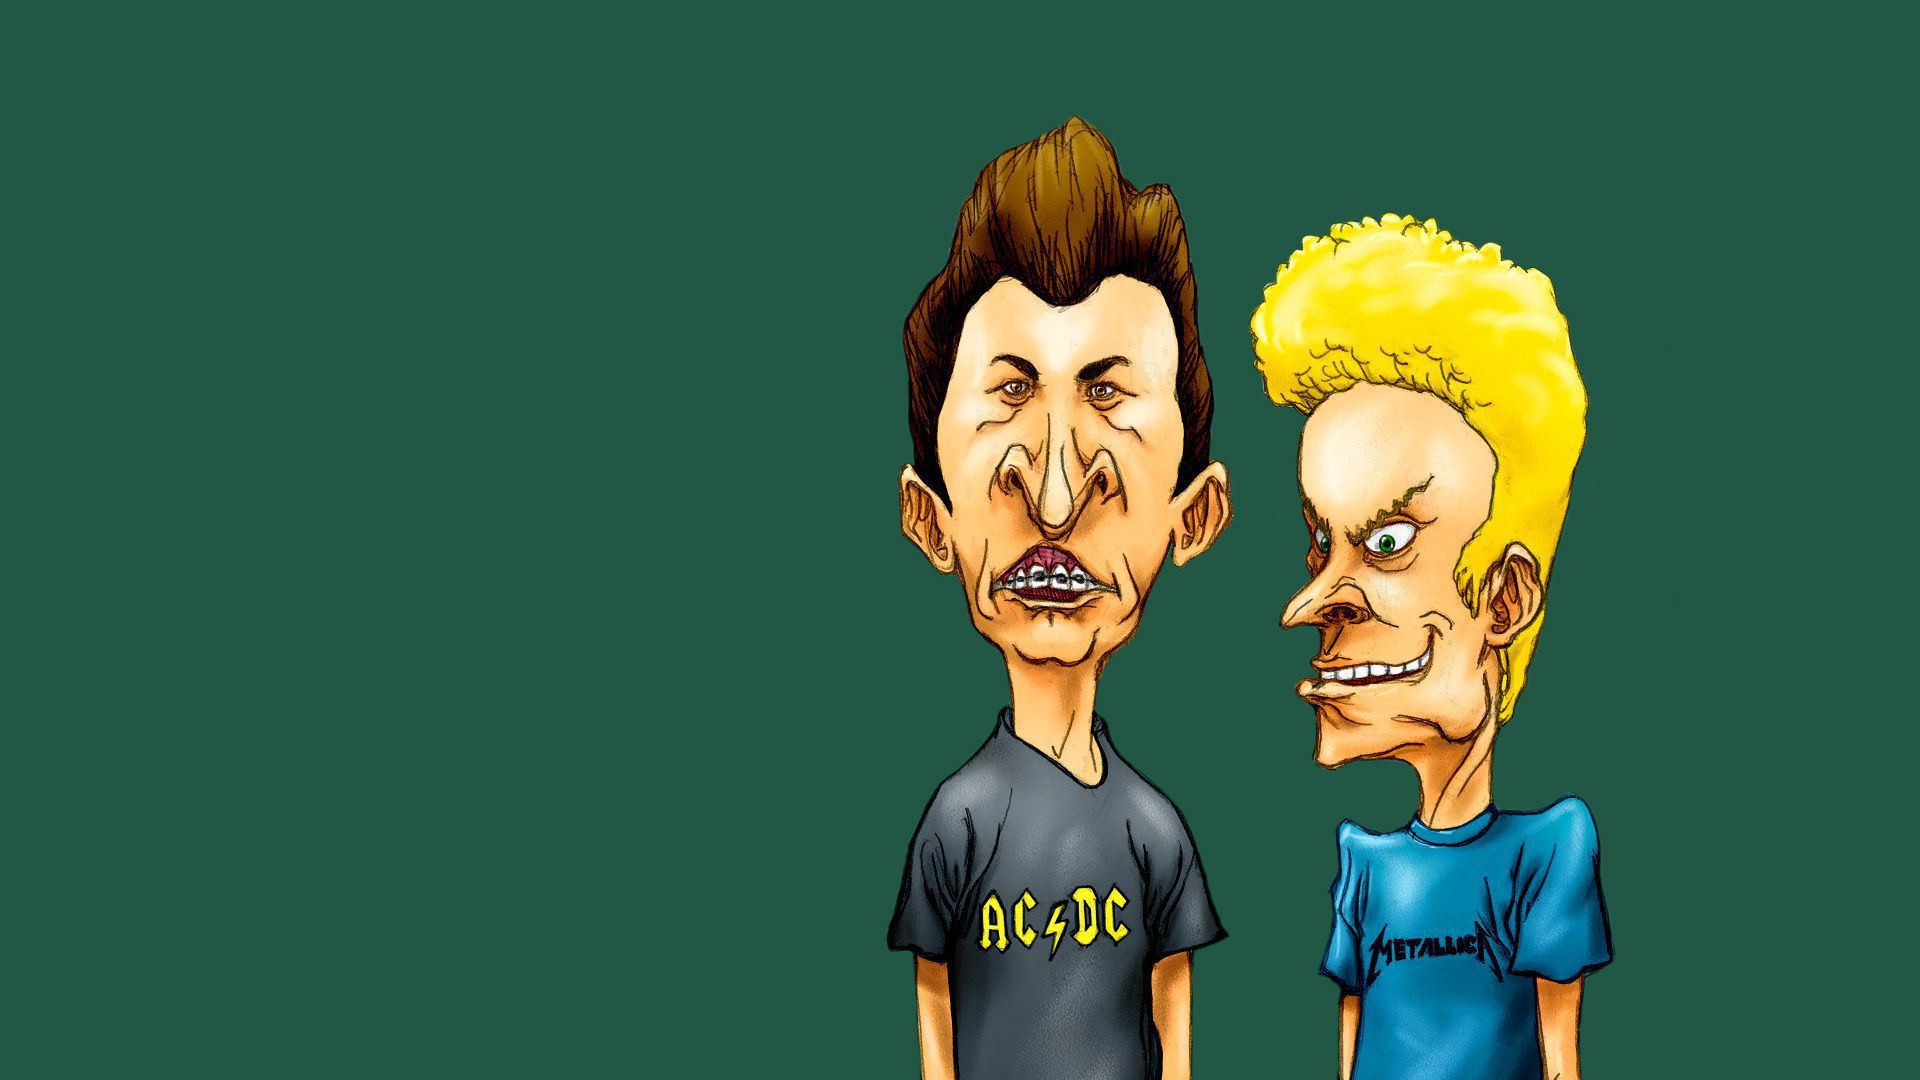 Beavis And Butthead High Quality Wallpapers